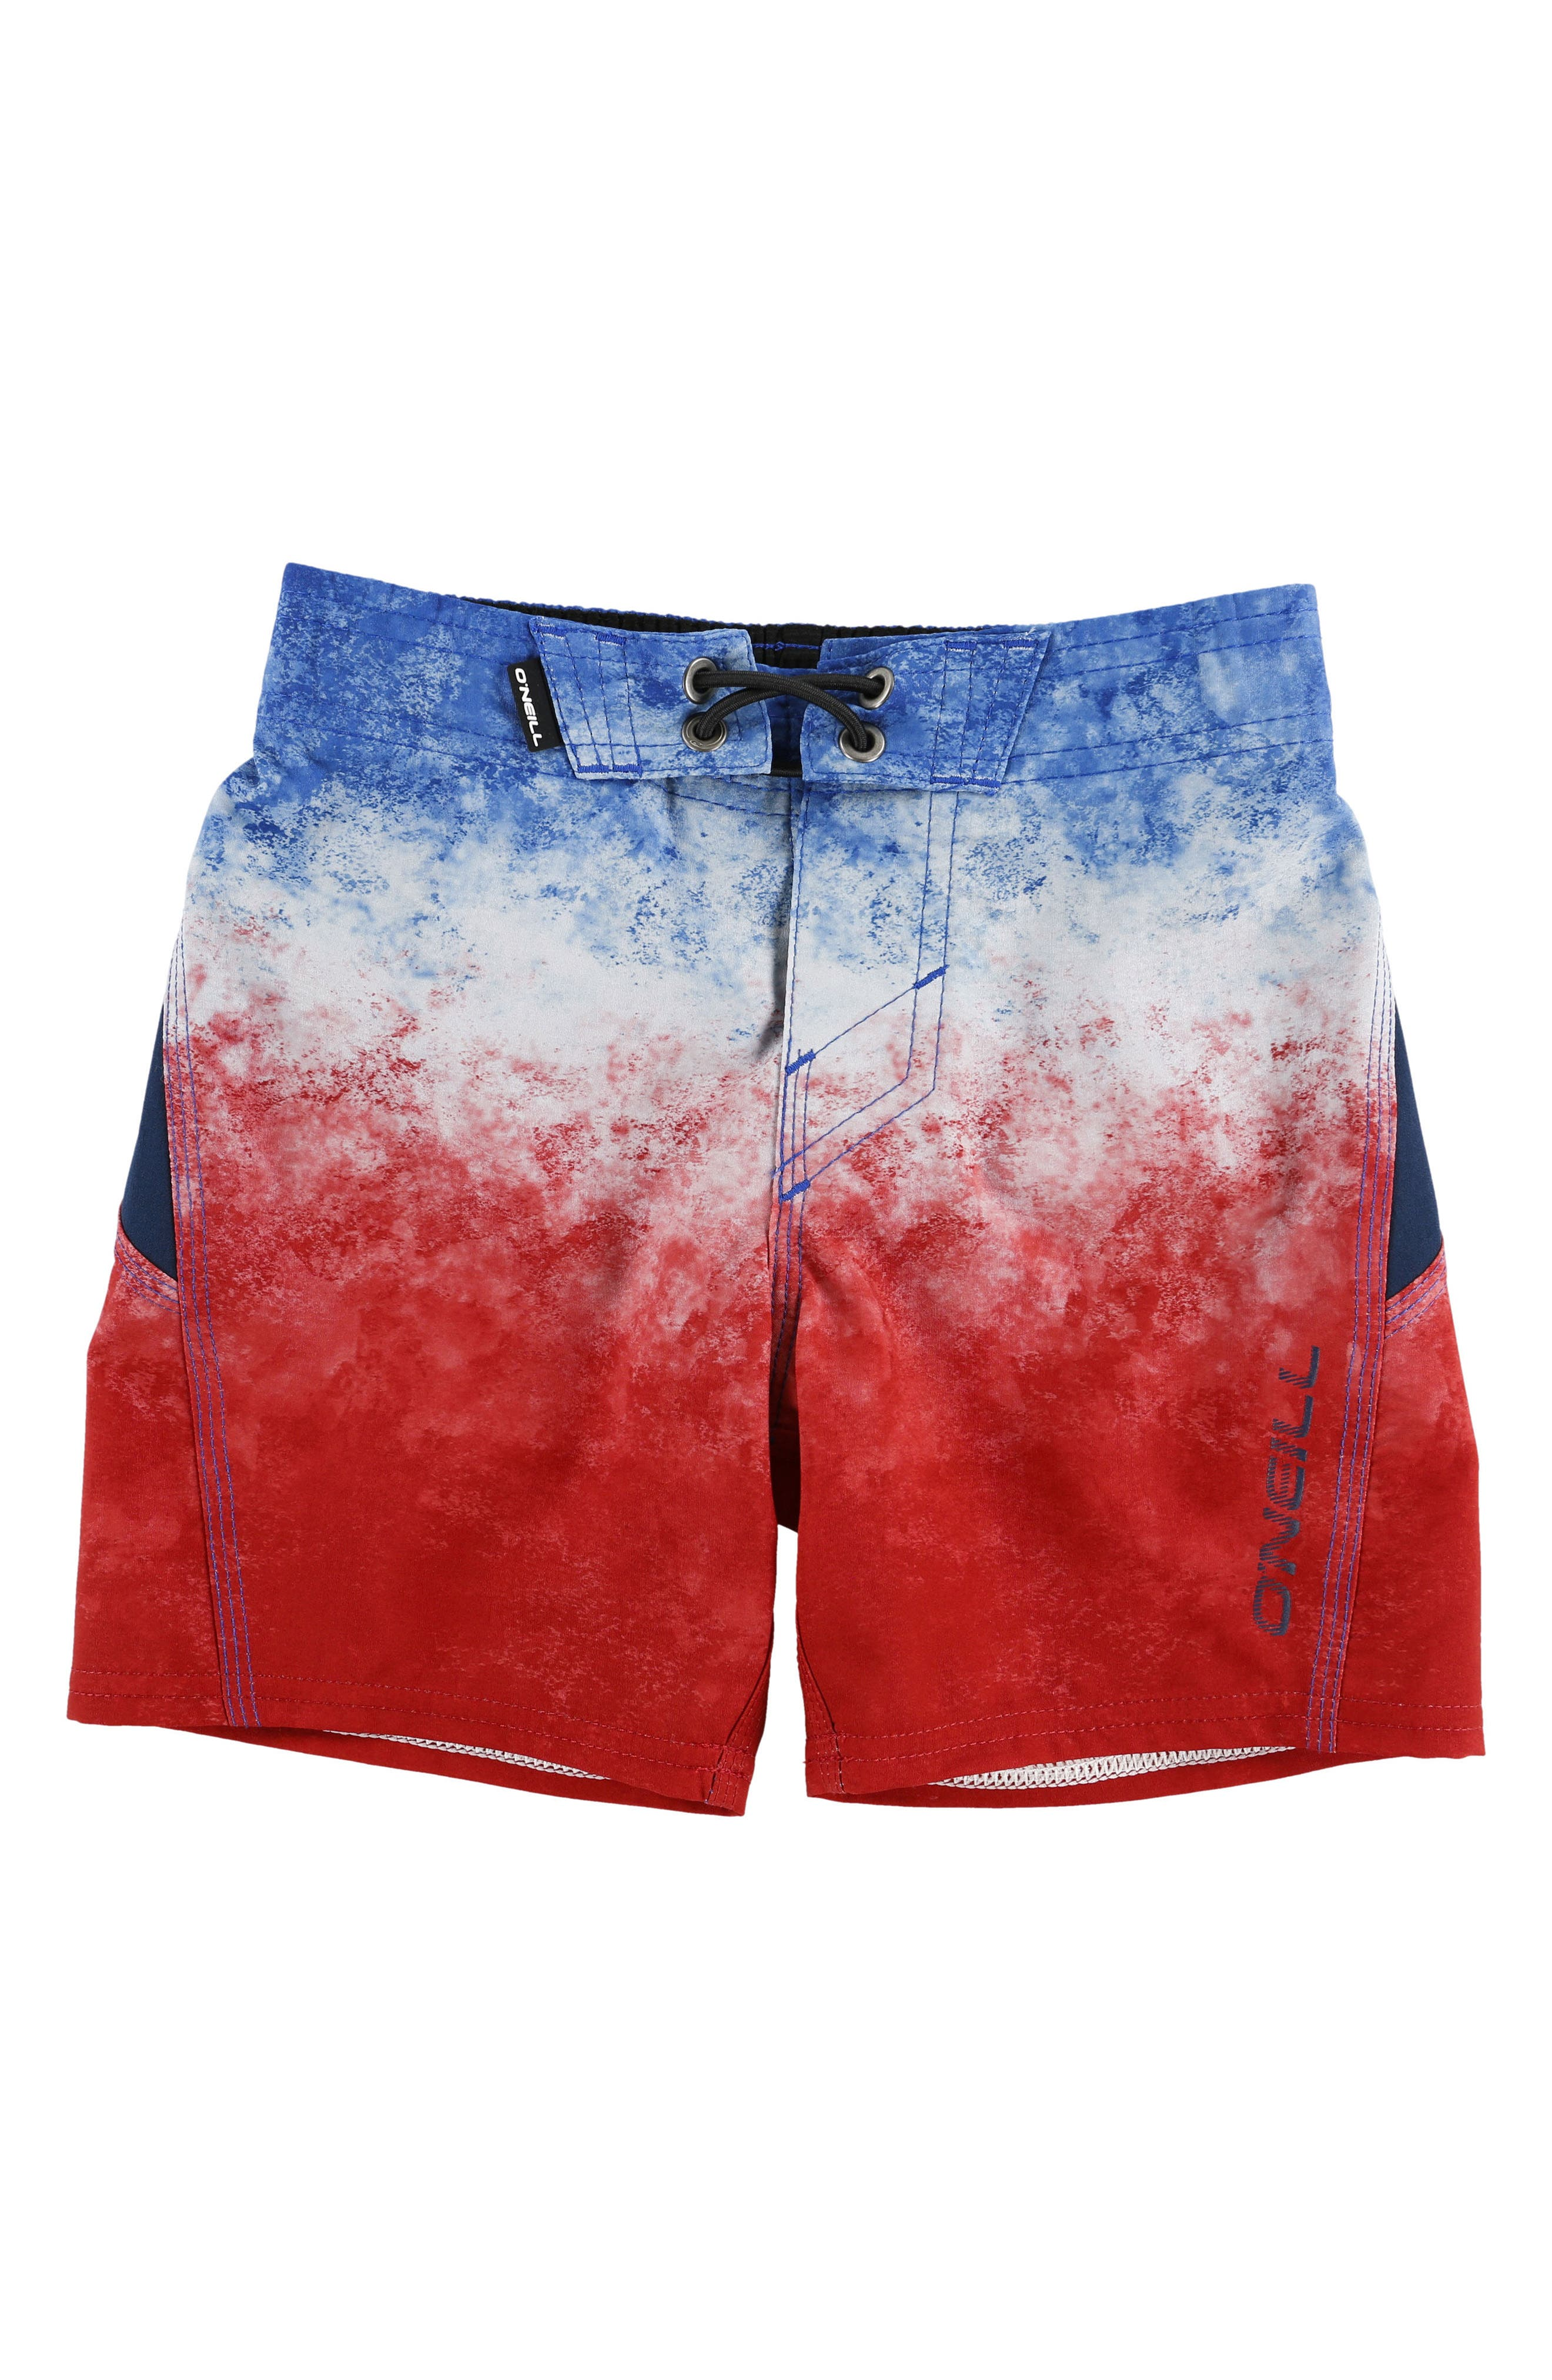 Sneakyfreak Surface Board Shorts,                             Main thumbnail 1, color,                             RED WHITE BLUE